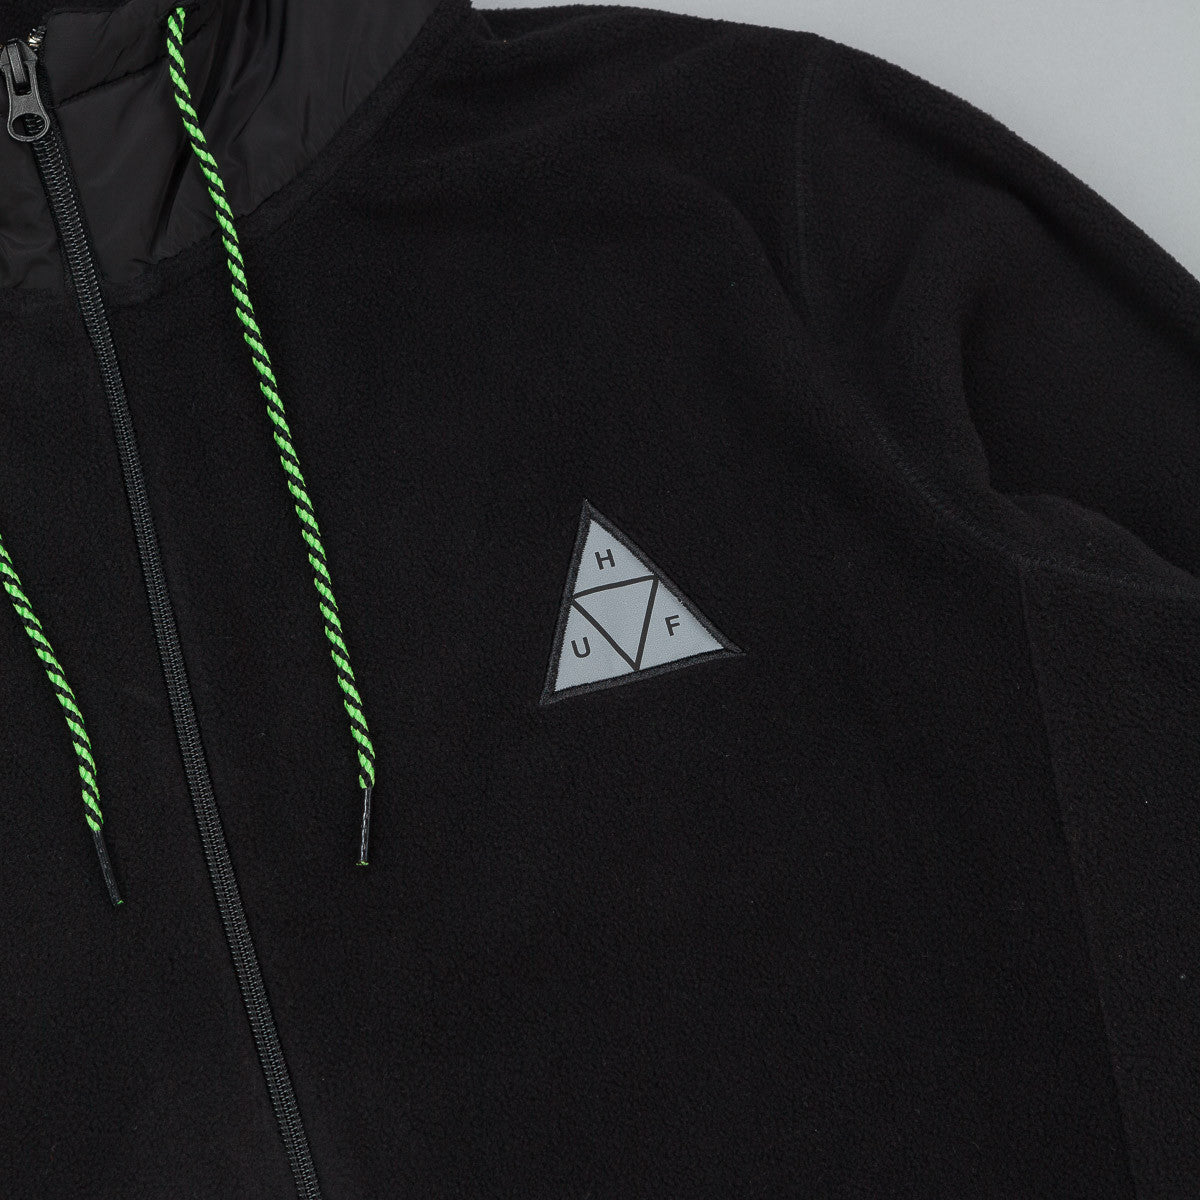 HUF Stanton Polar Fleece Zip Up Hooded Sweatshirt - Black